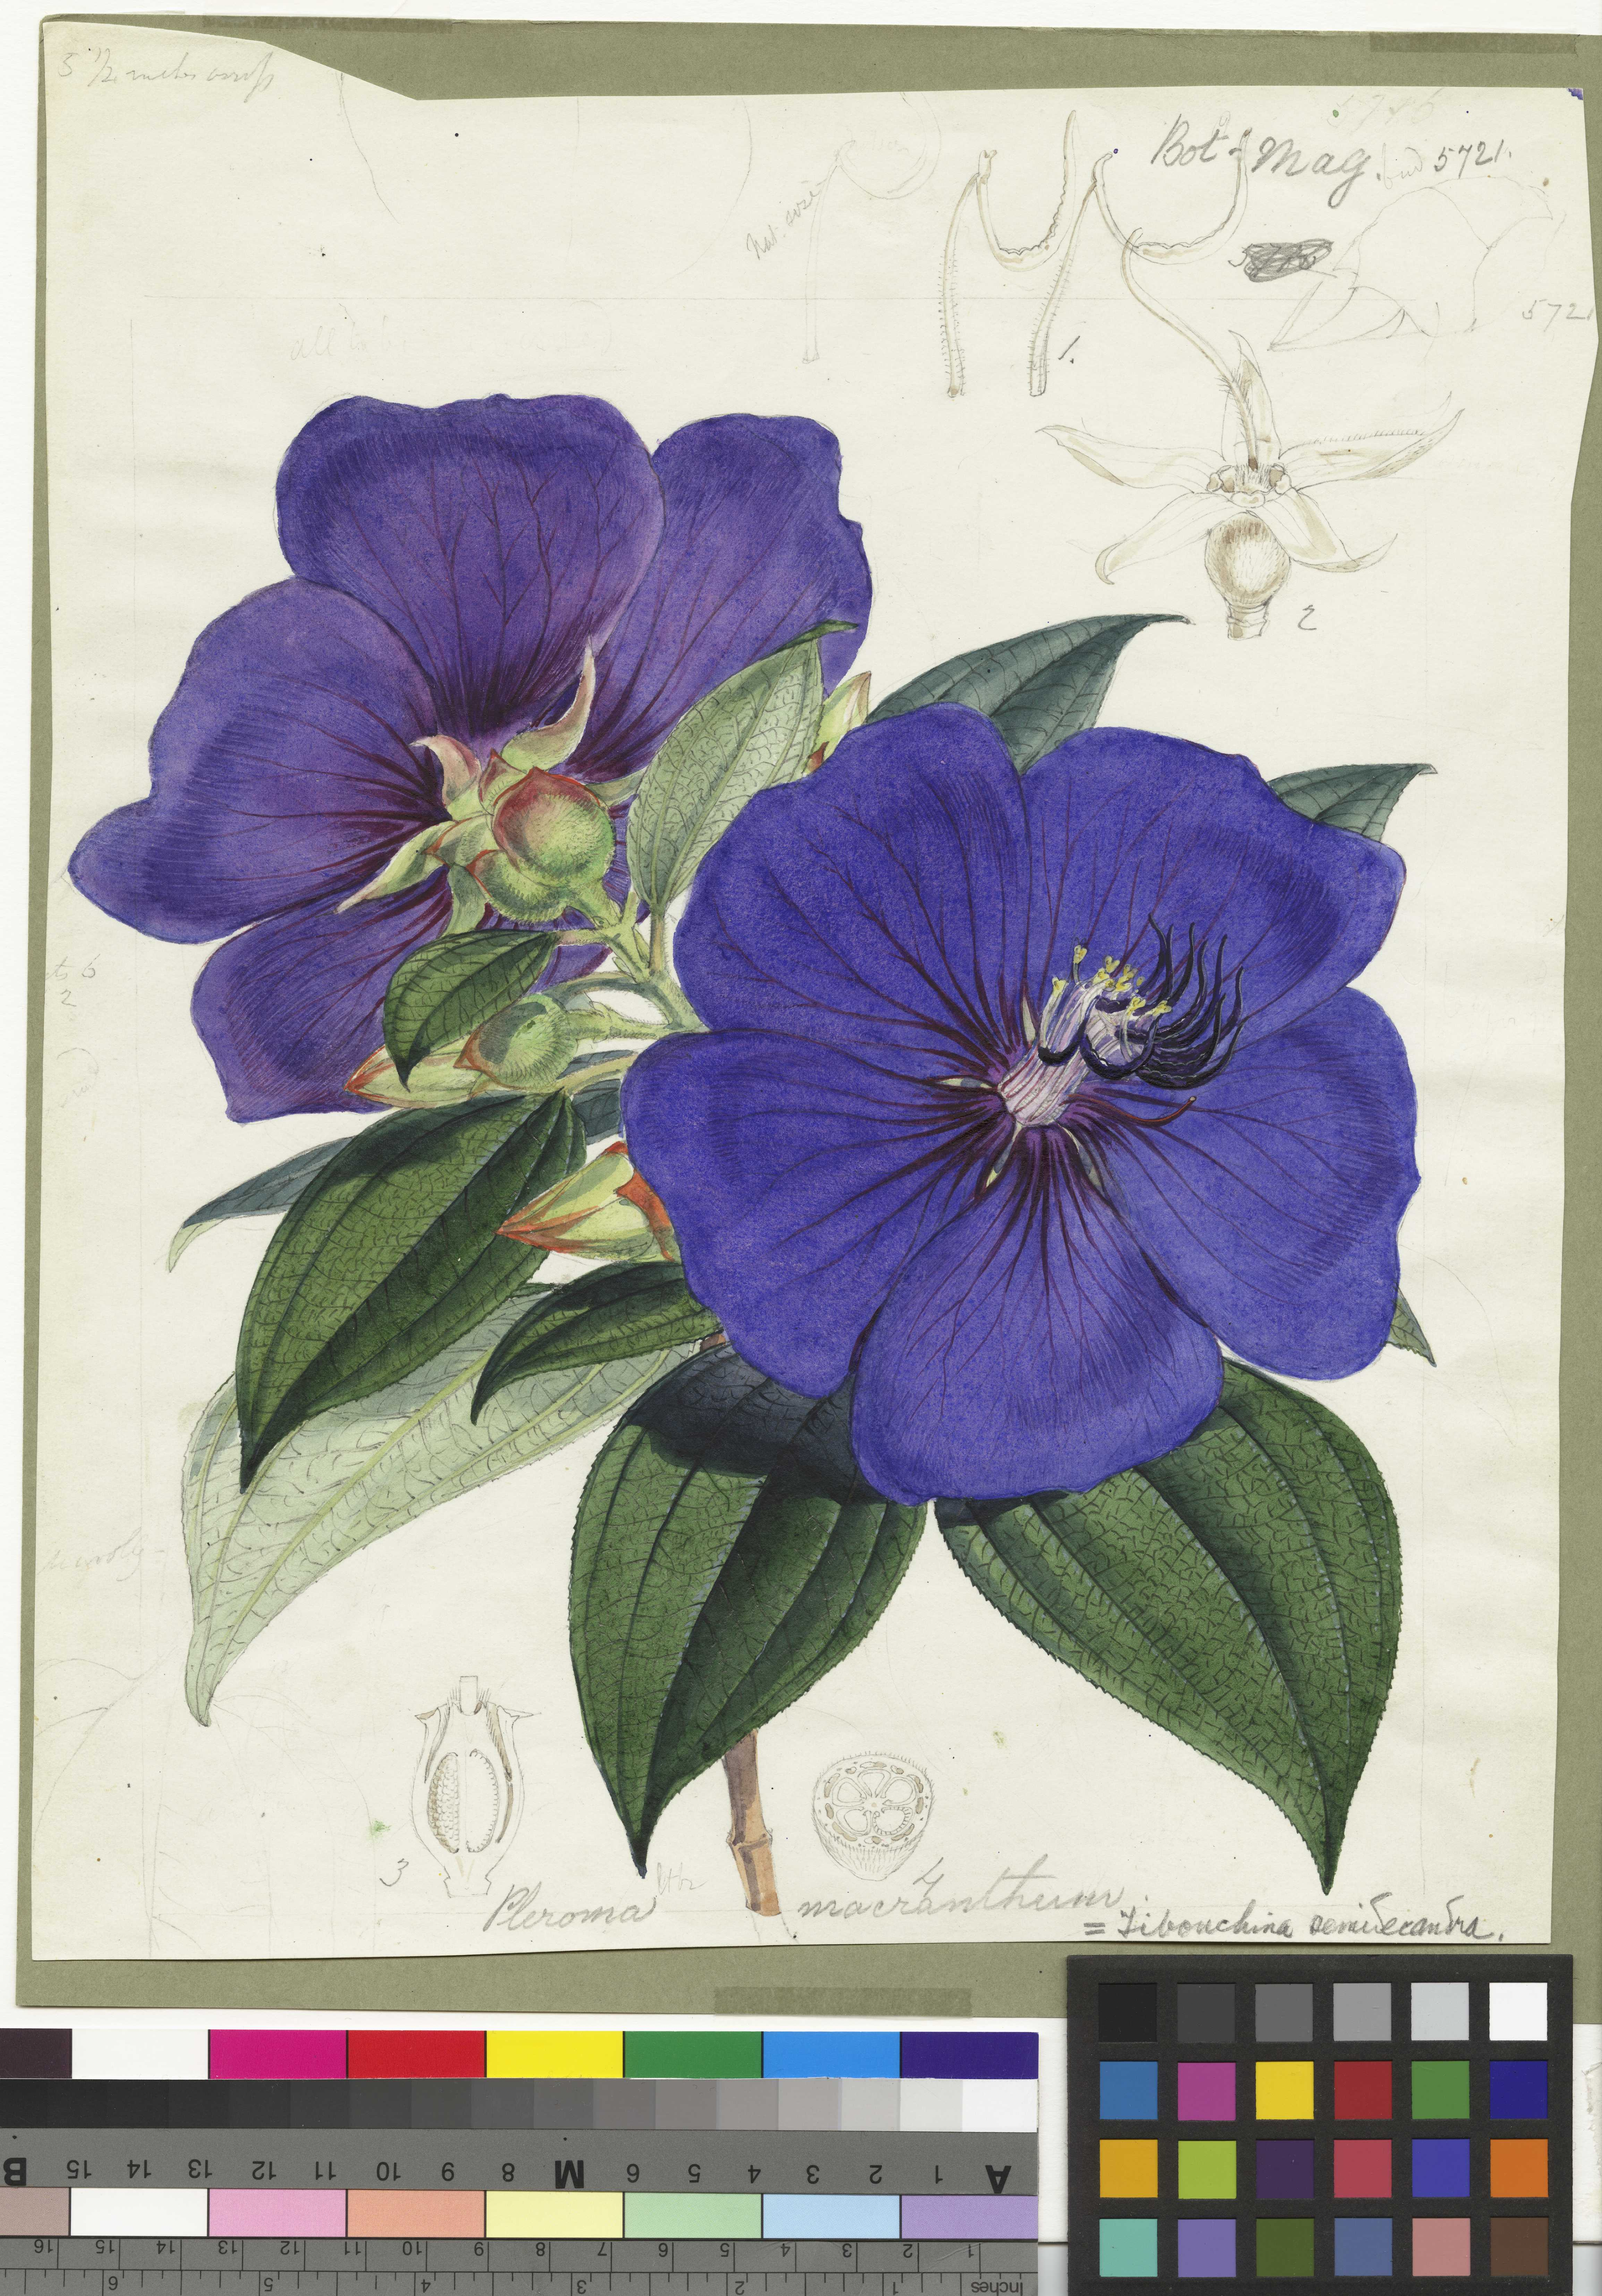 Photo of another of Fitch's pieces for Curtis' Botanical Magazine.